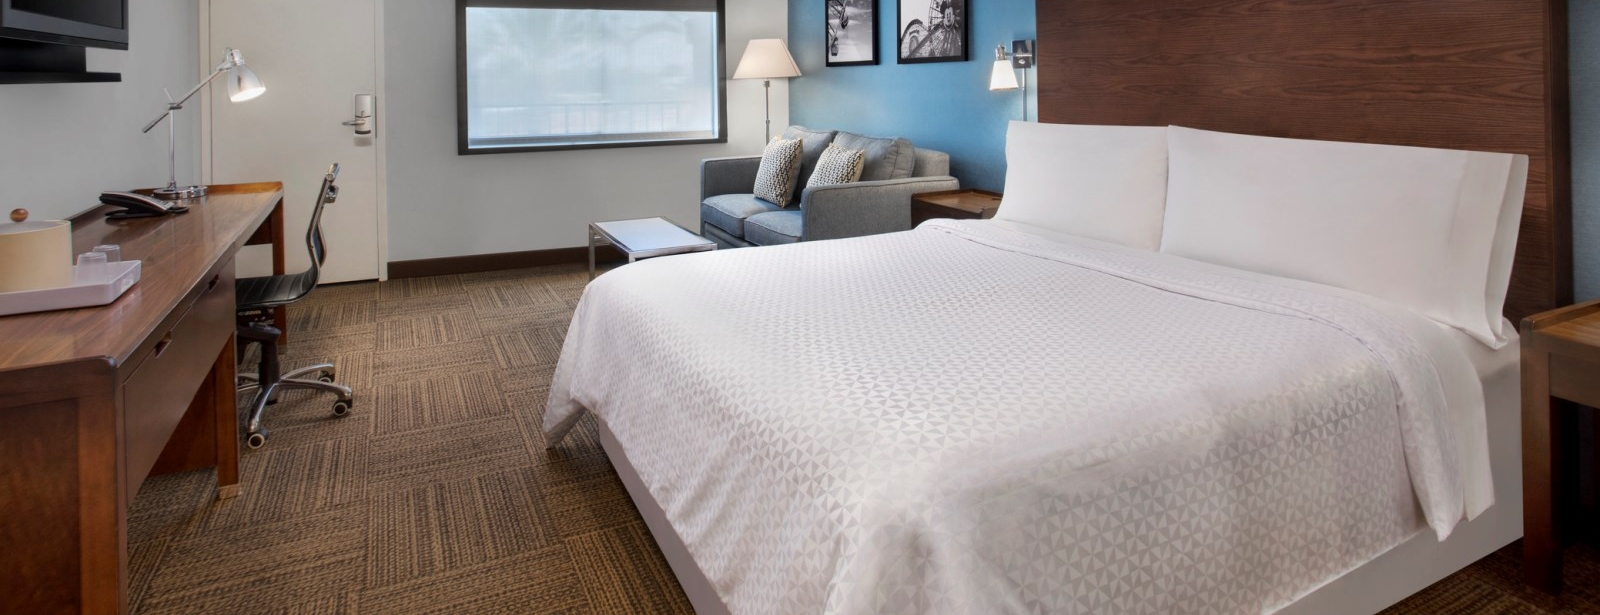 anaheim guest rooms | Four Points by Sheraton Anaheim